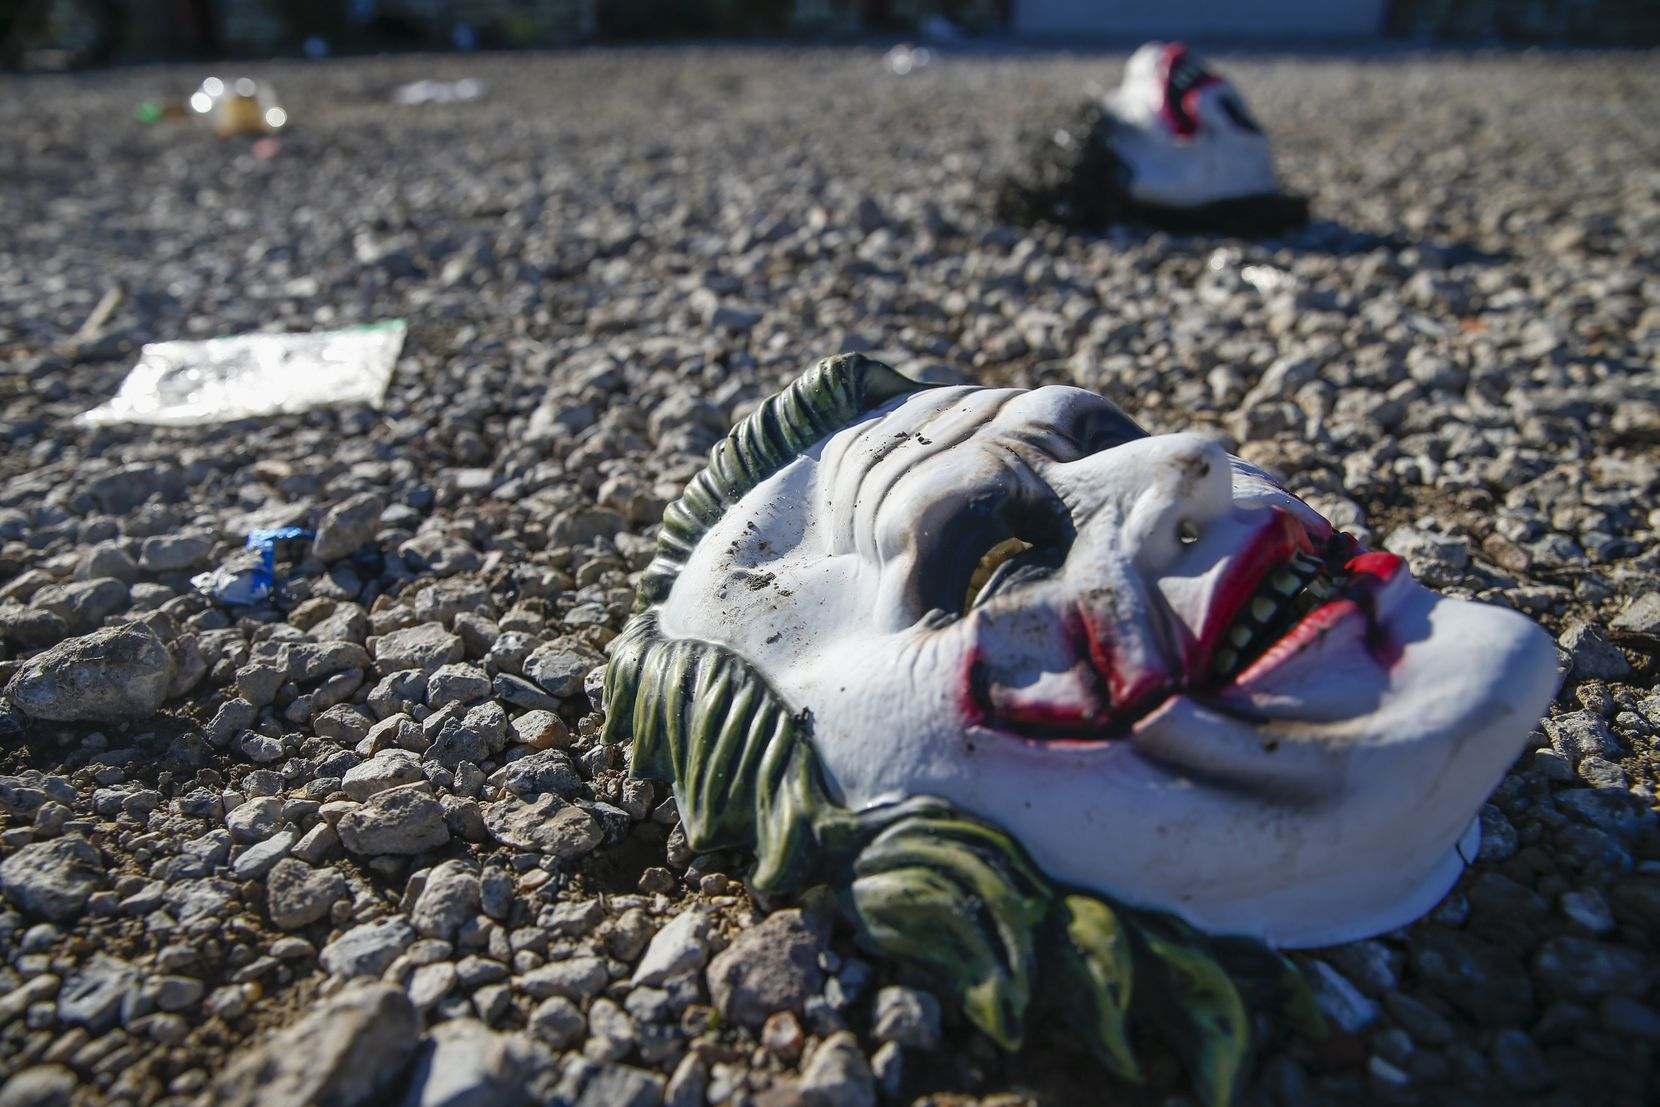 Halloween masks littered the ground among signs of chaos at the scene where a mass shooting occurred the night before at the Party Venue.